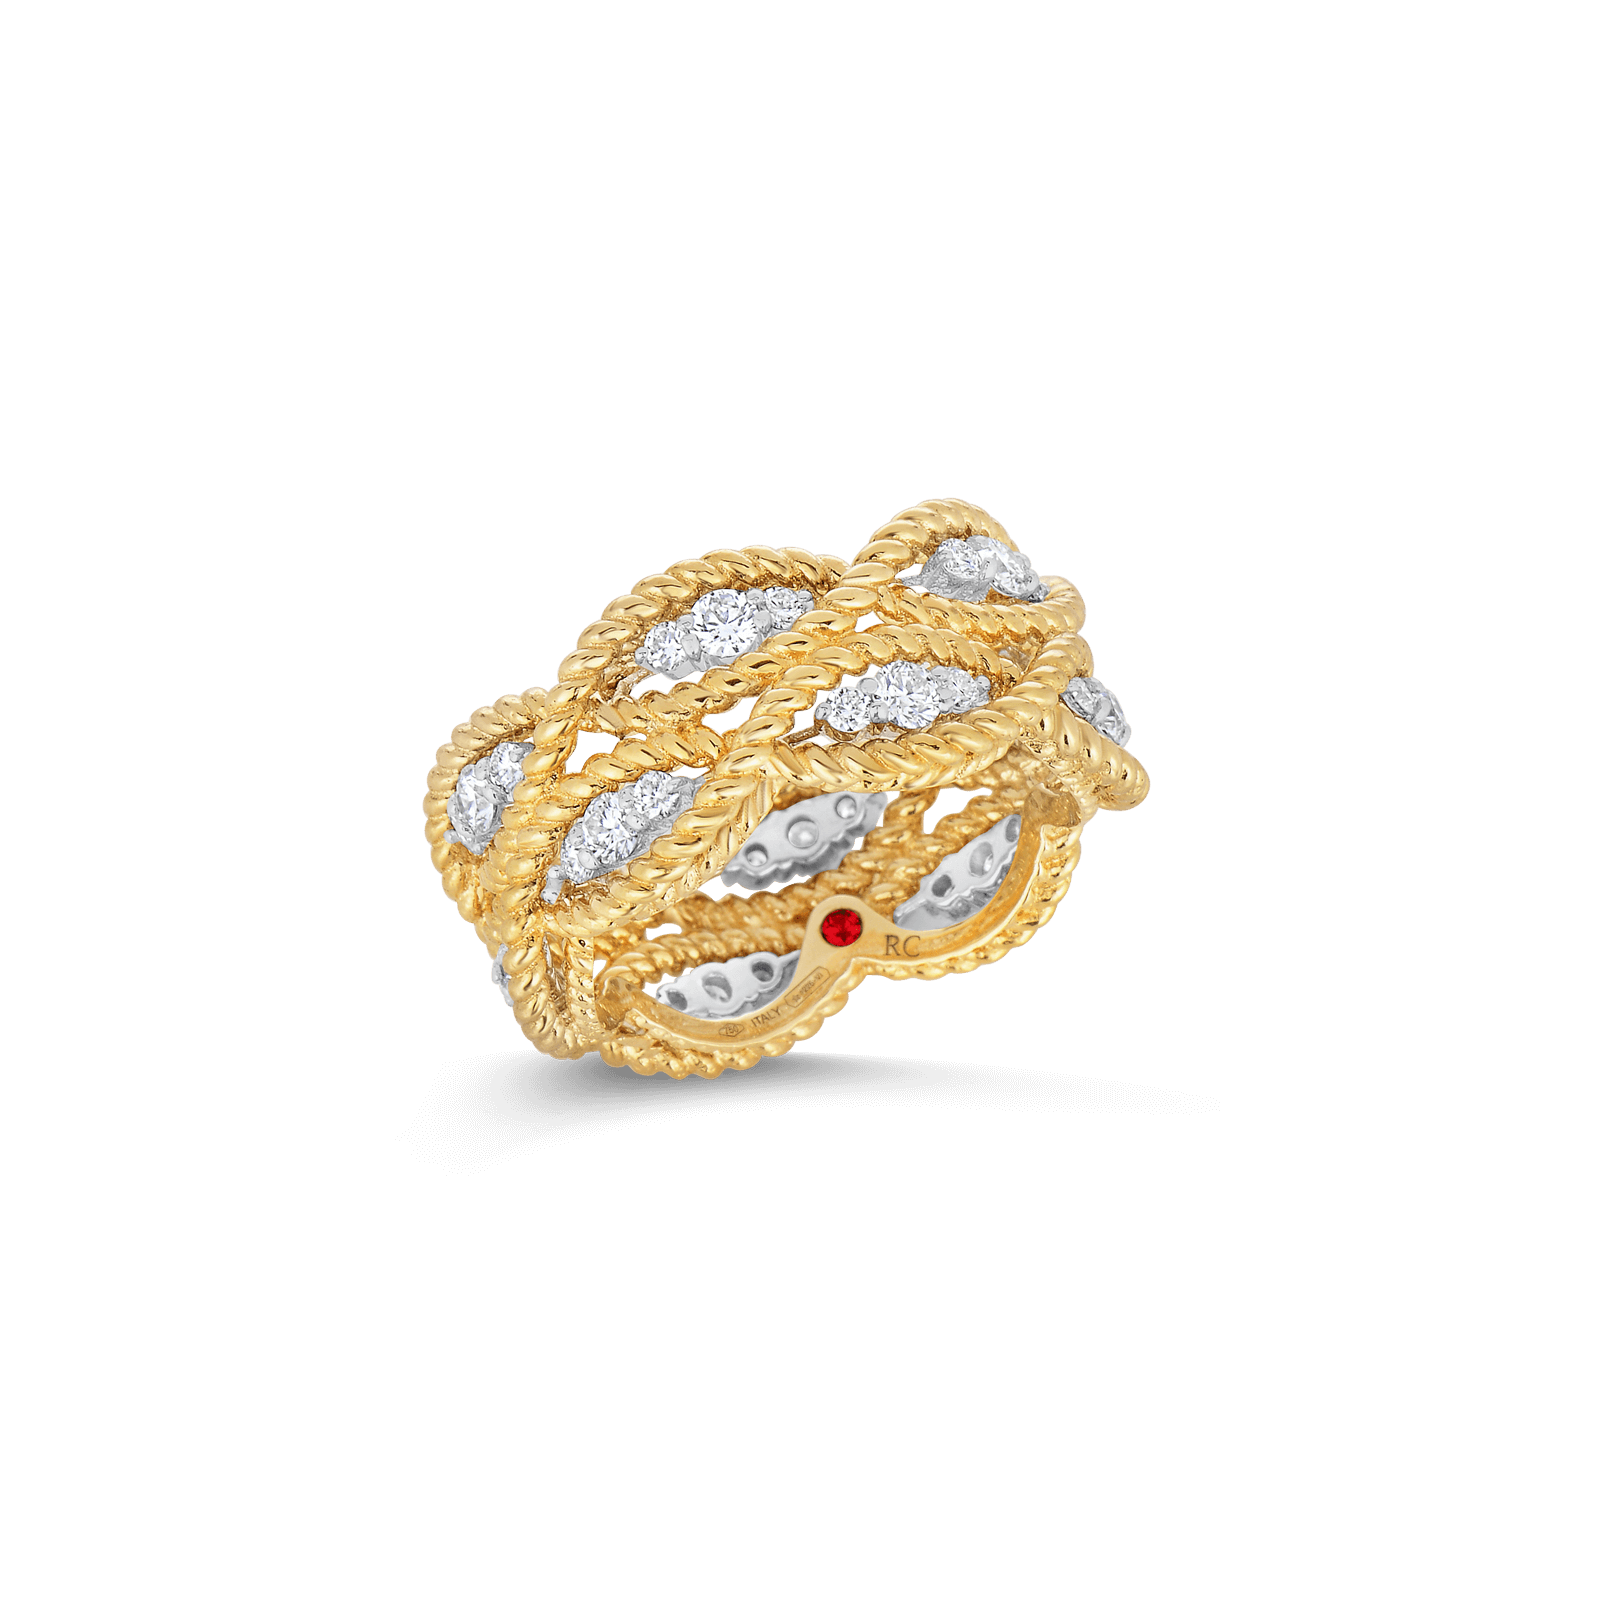 2 Row Ring With Diamonds 18k Yellow Gold, 6.5